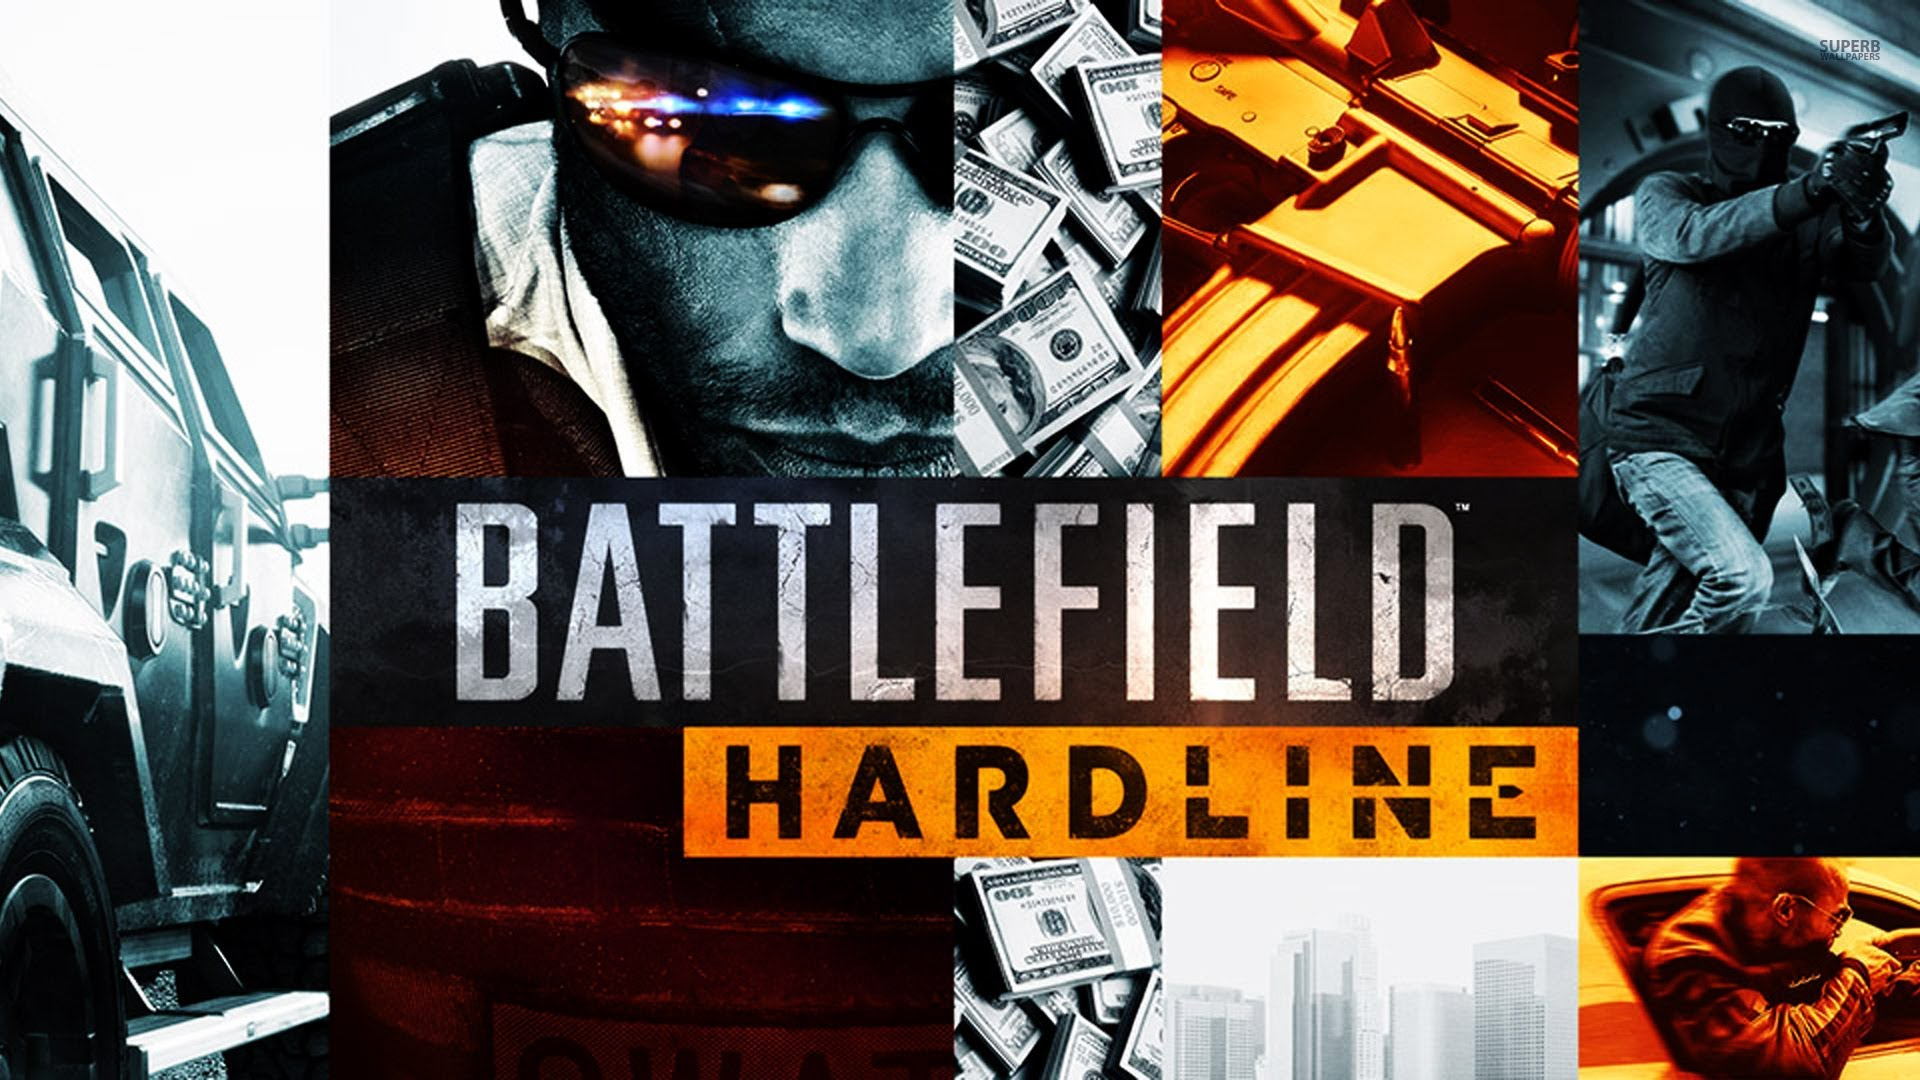 Buy Battlefield Hardline CD Key for Origin